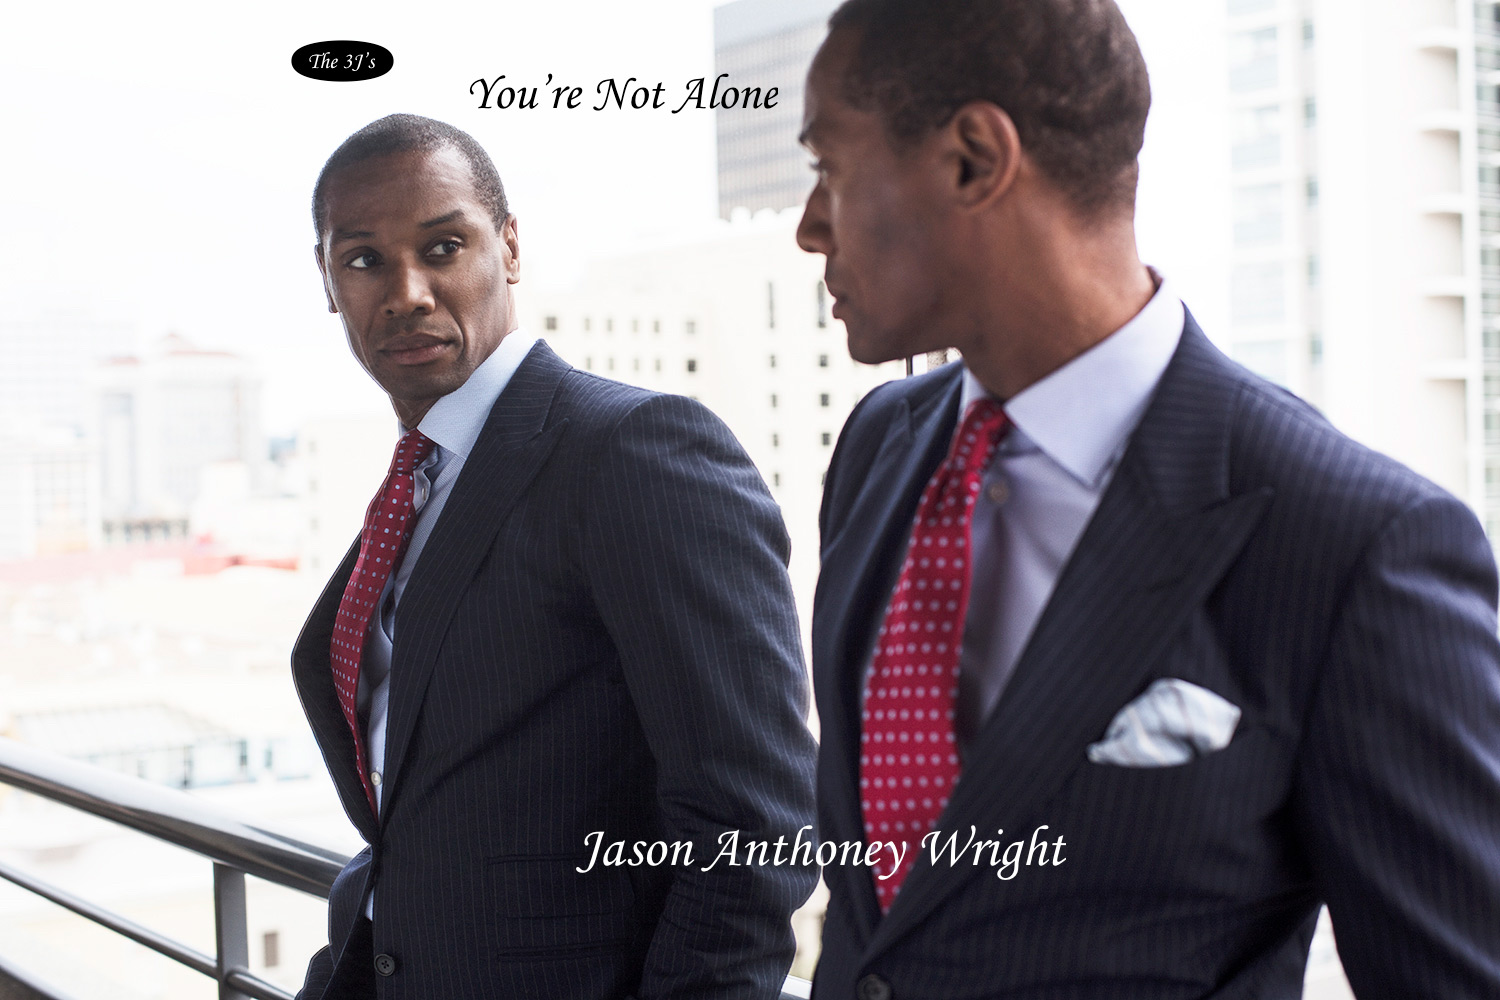 The 3J's - You're Not Alone (Coming March 20th, 2018)